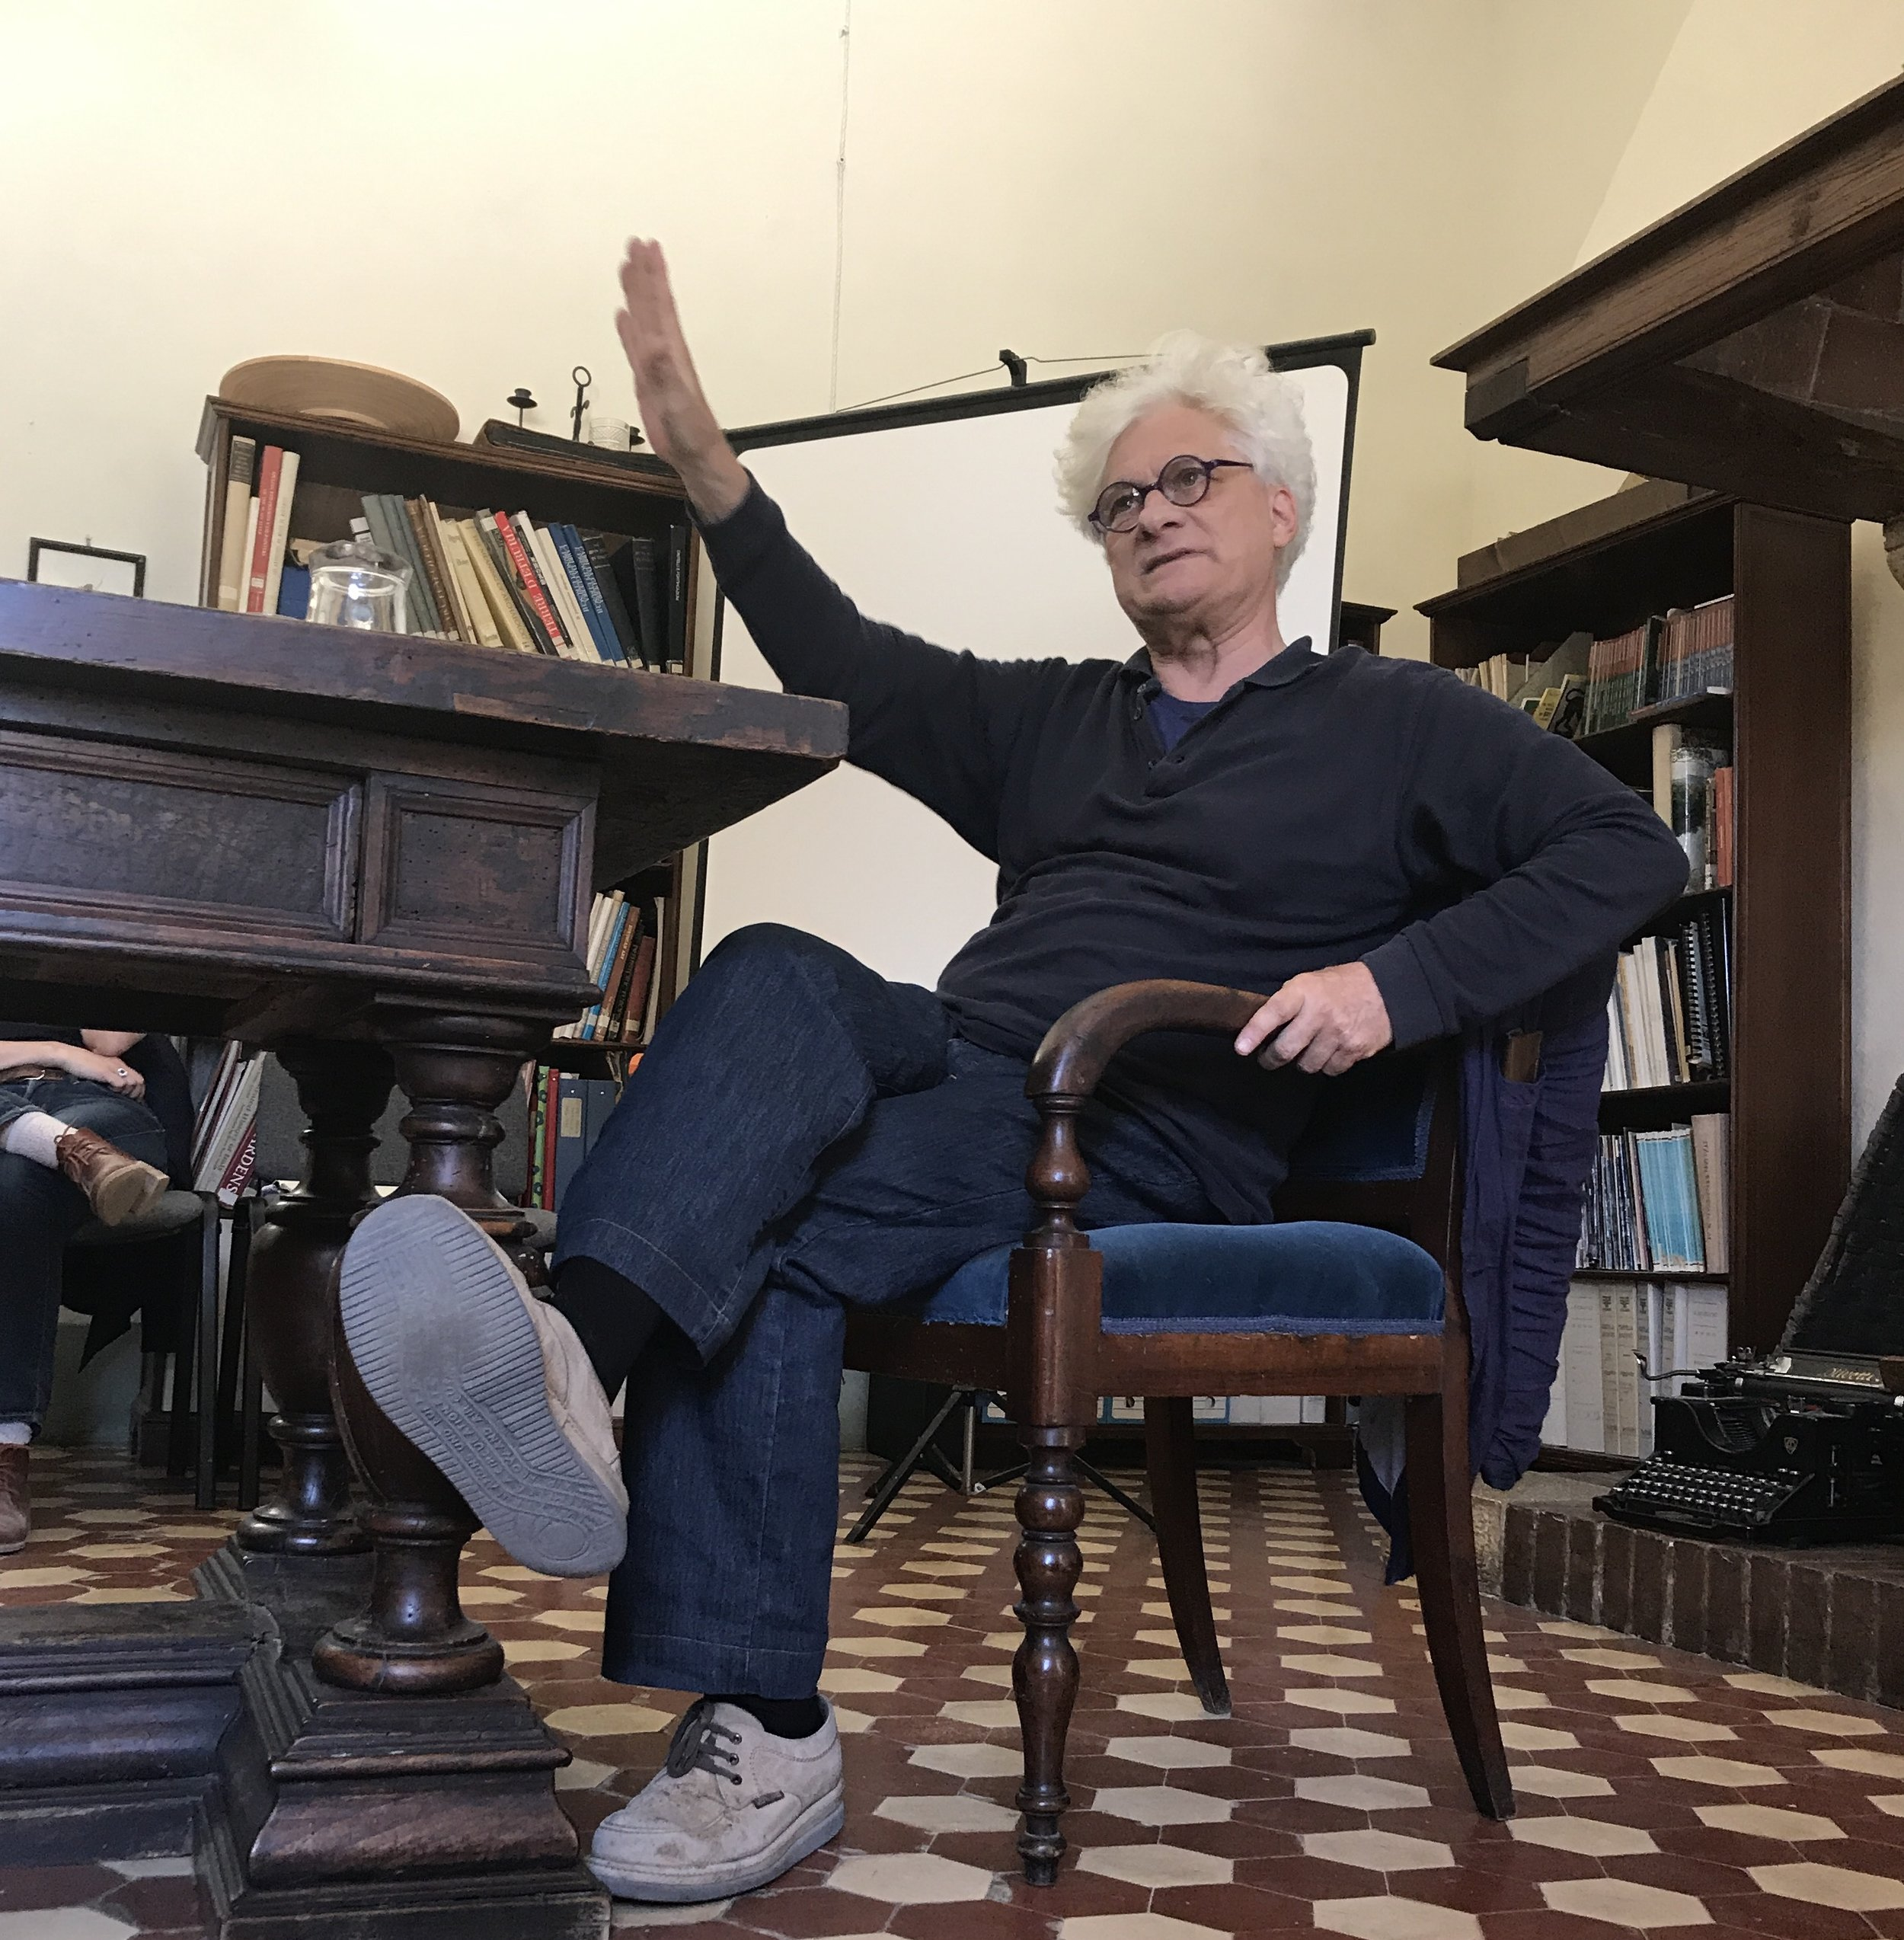 Franco 'Bifo' Berardi lecturing at Spannocchia, 2017  Photo Credit: Natalya Mayrena